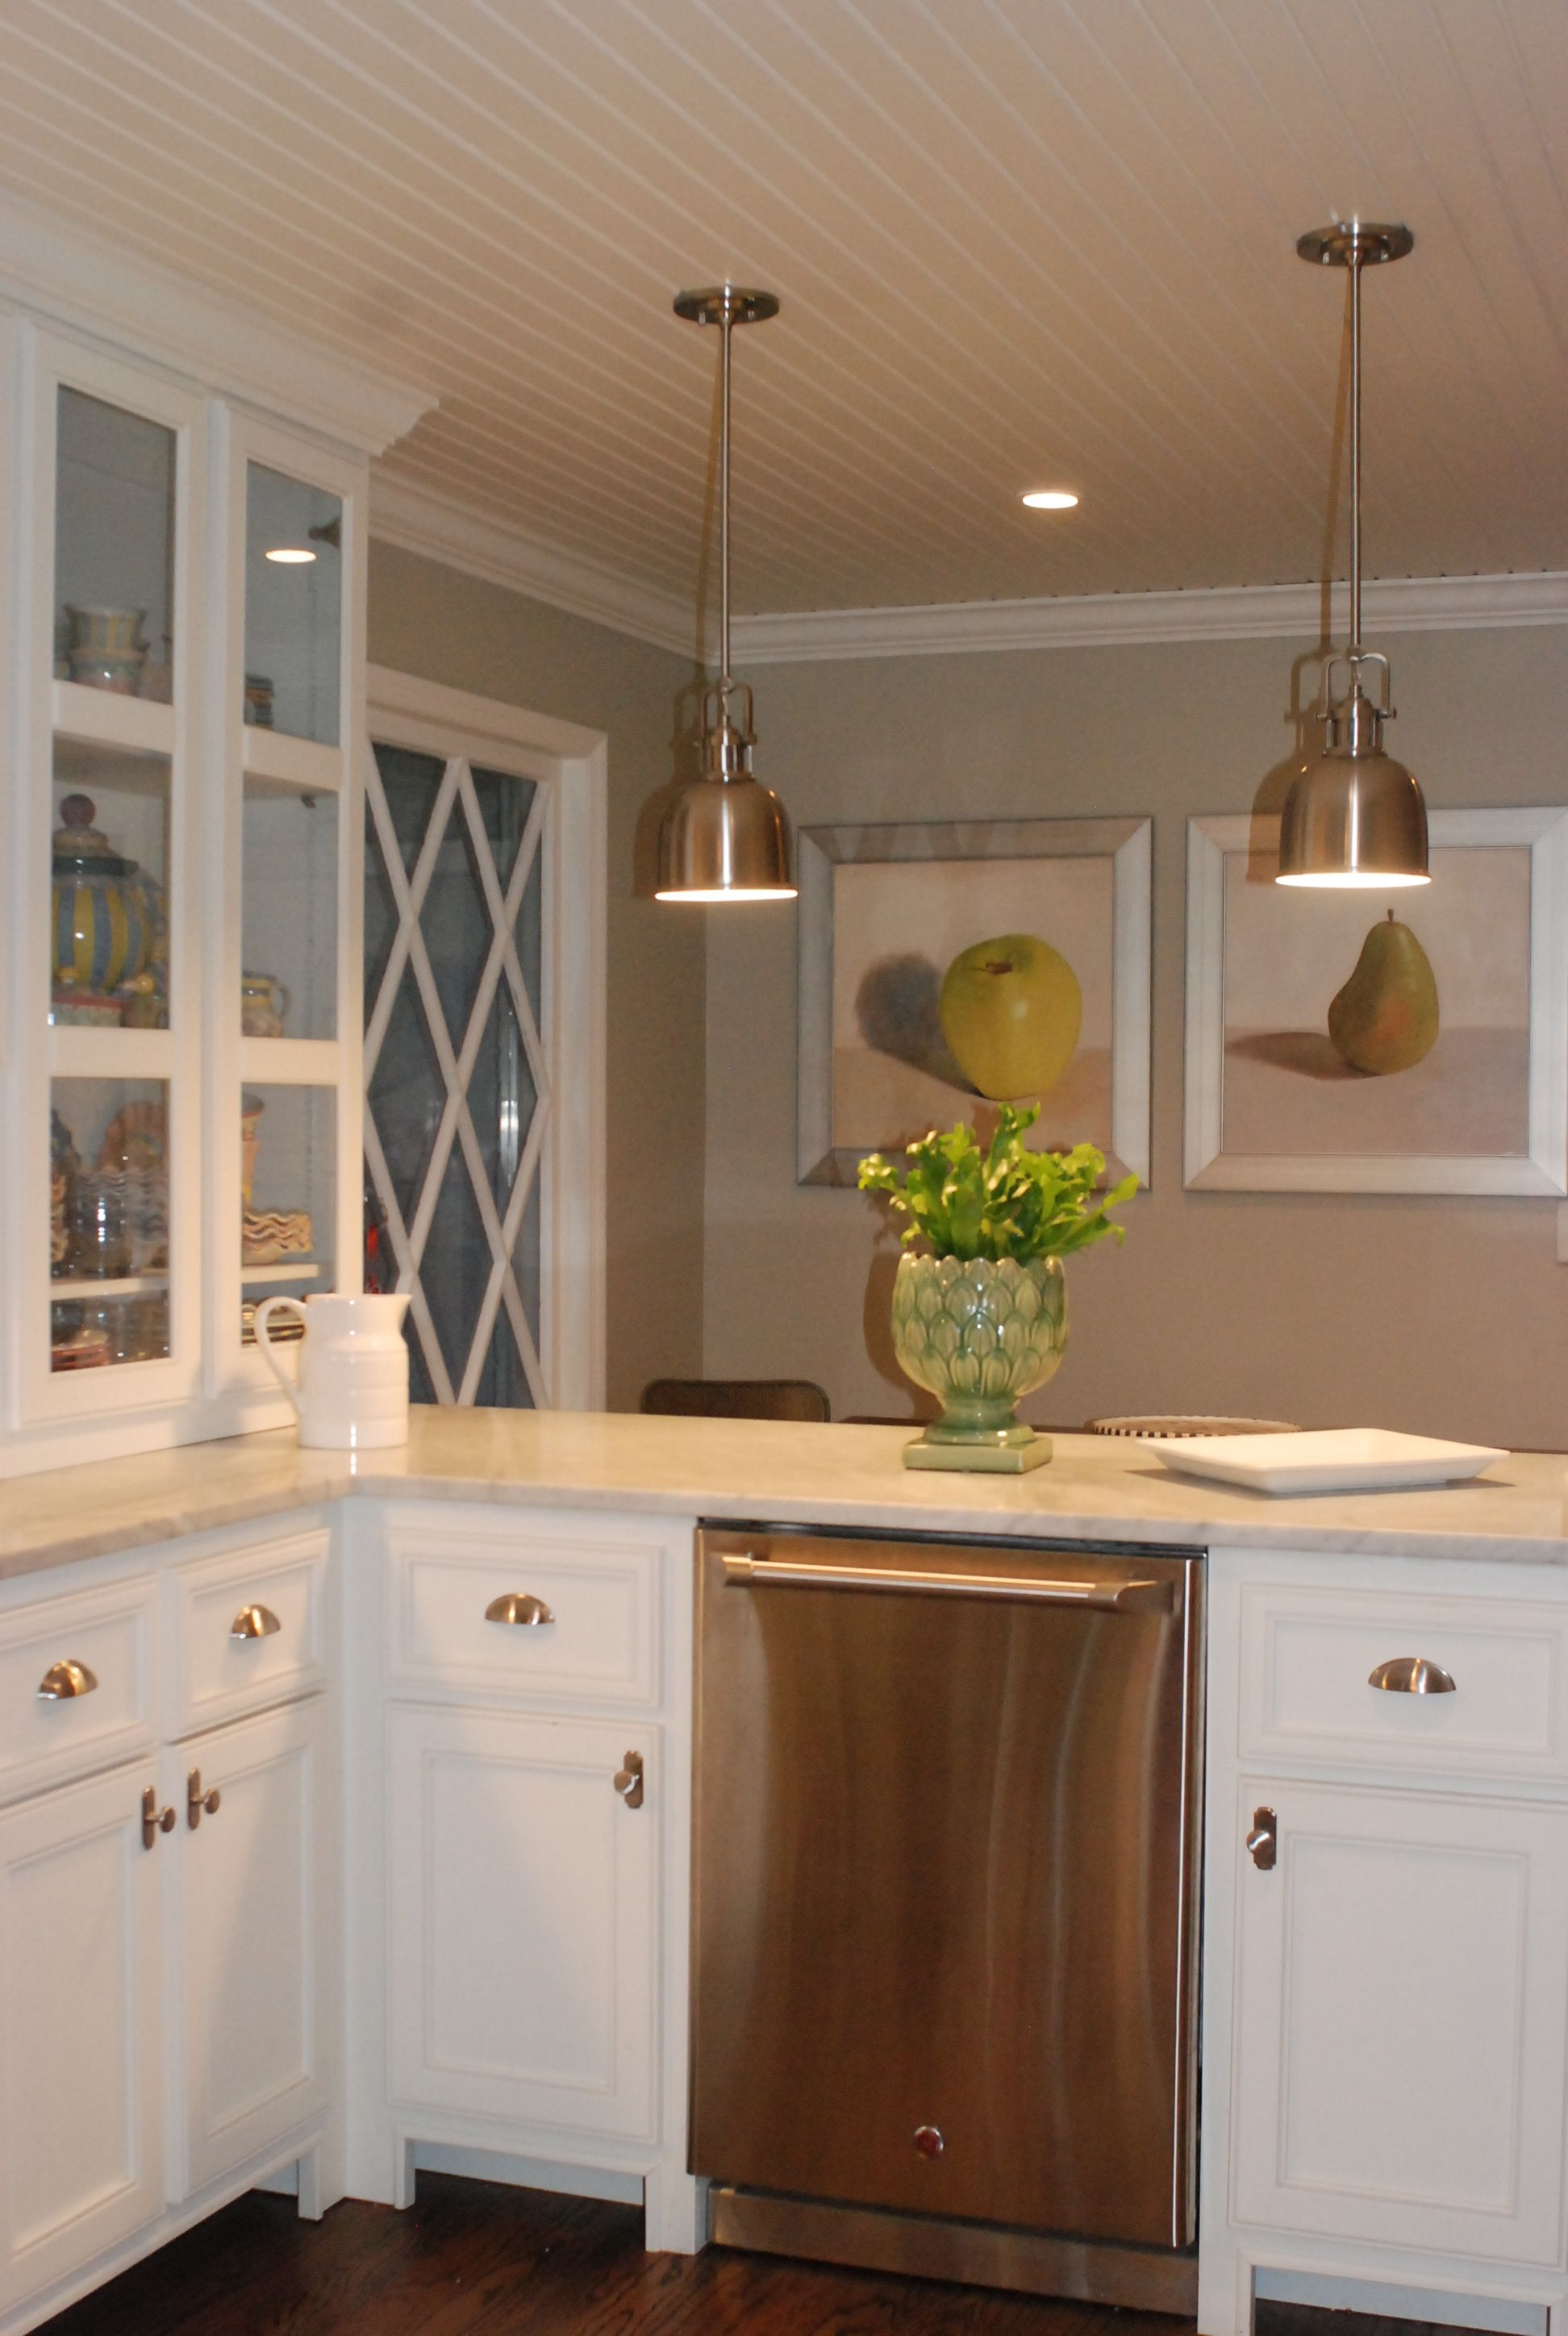 White Kitchen Wall Cabinets Through Exhaust Fan Love The Cream Counter Tops And Ceiling